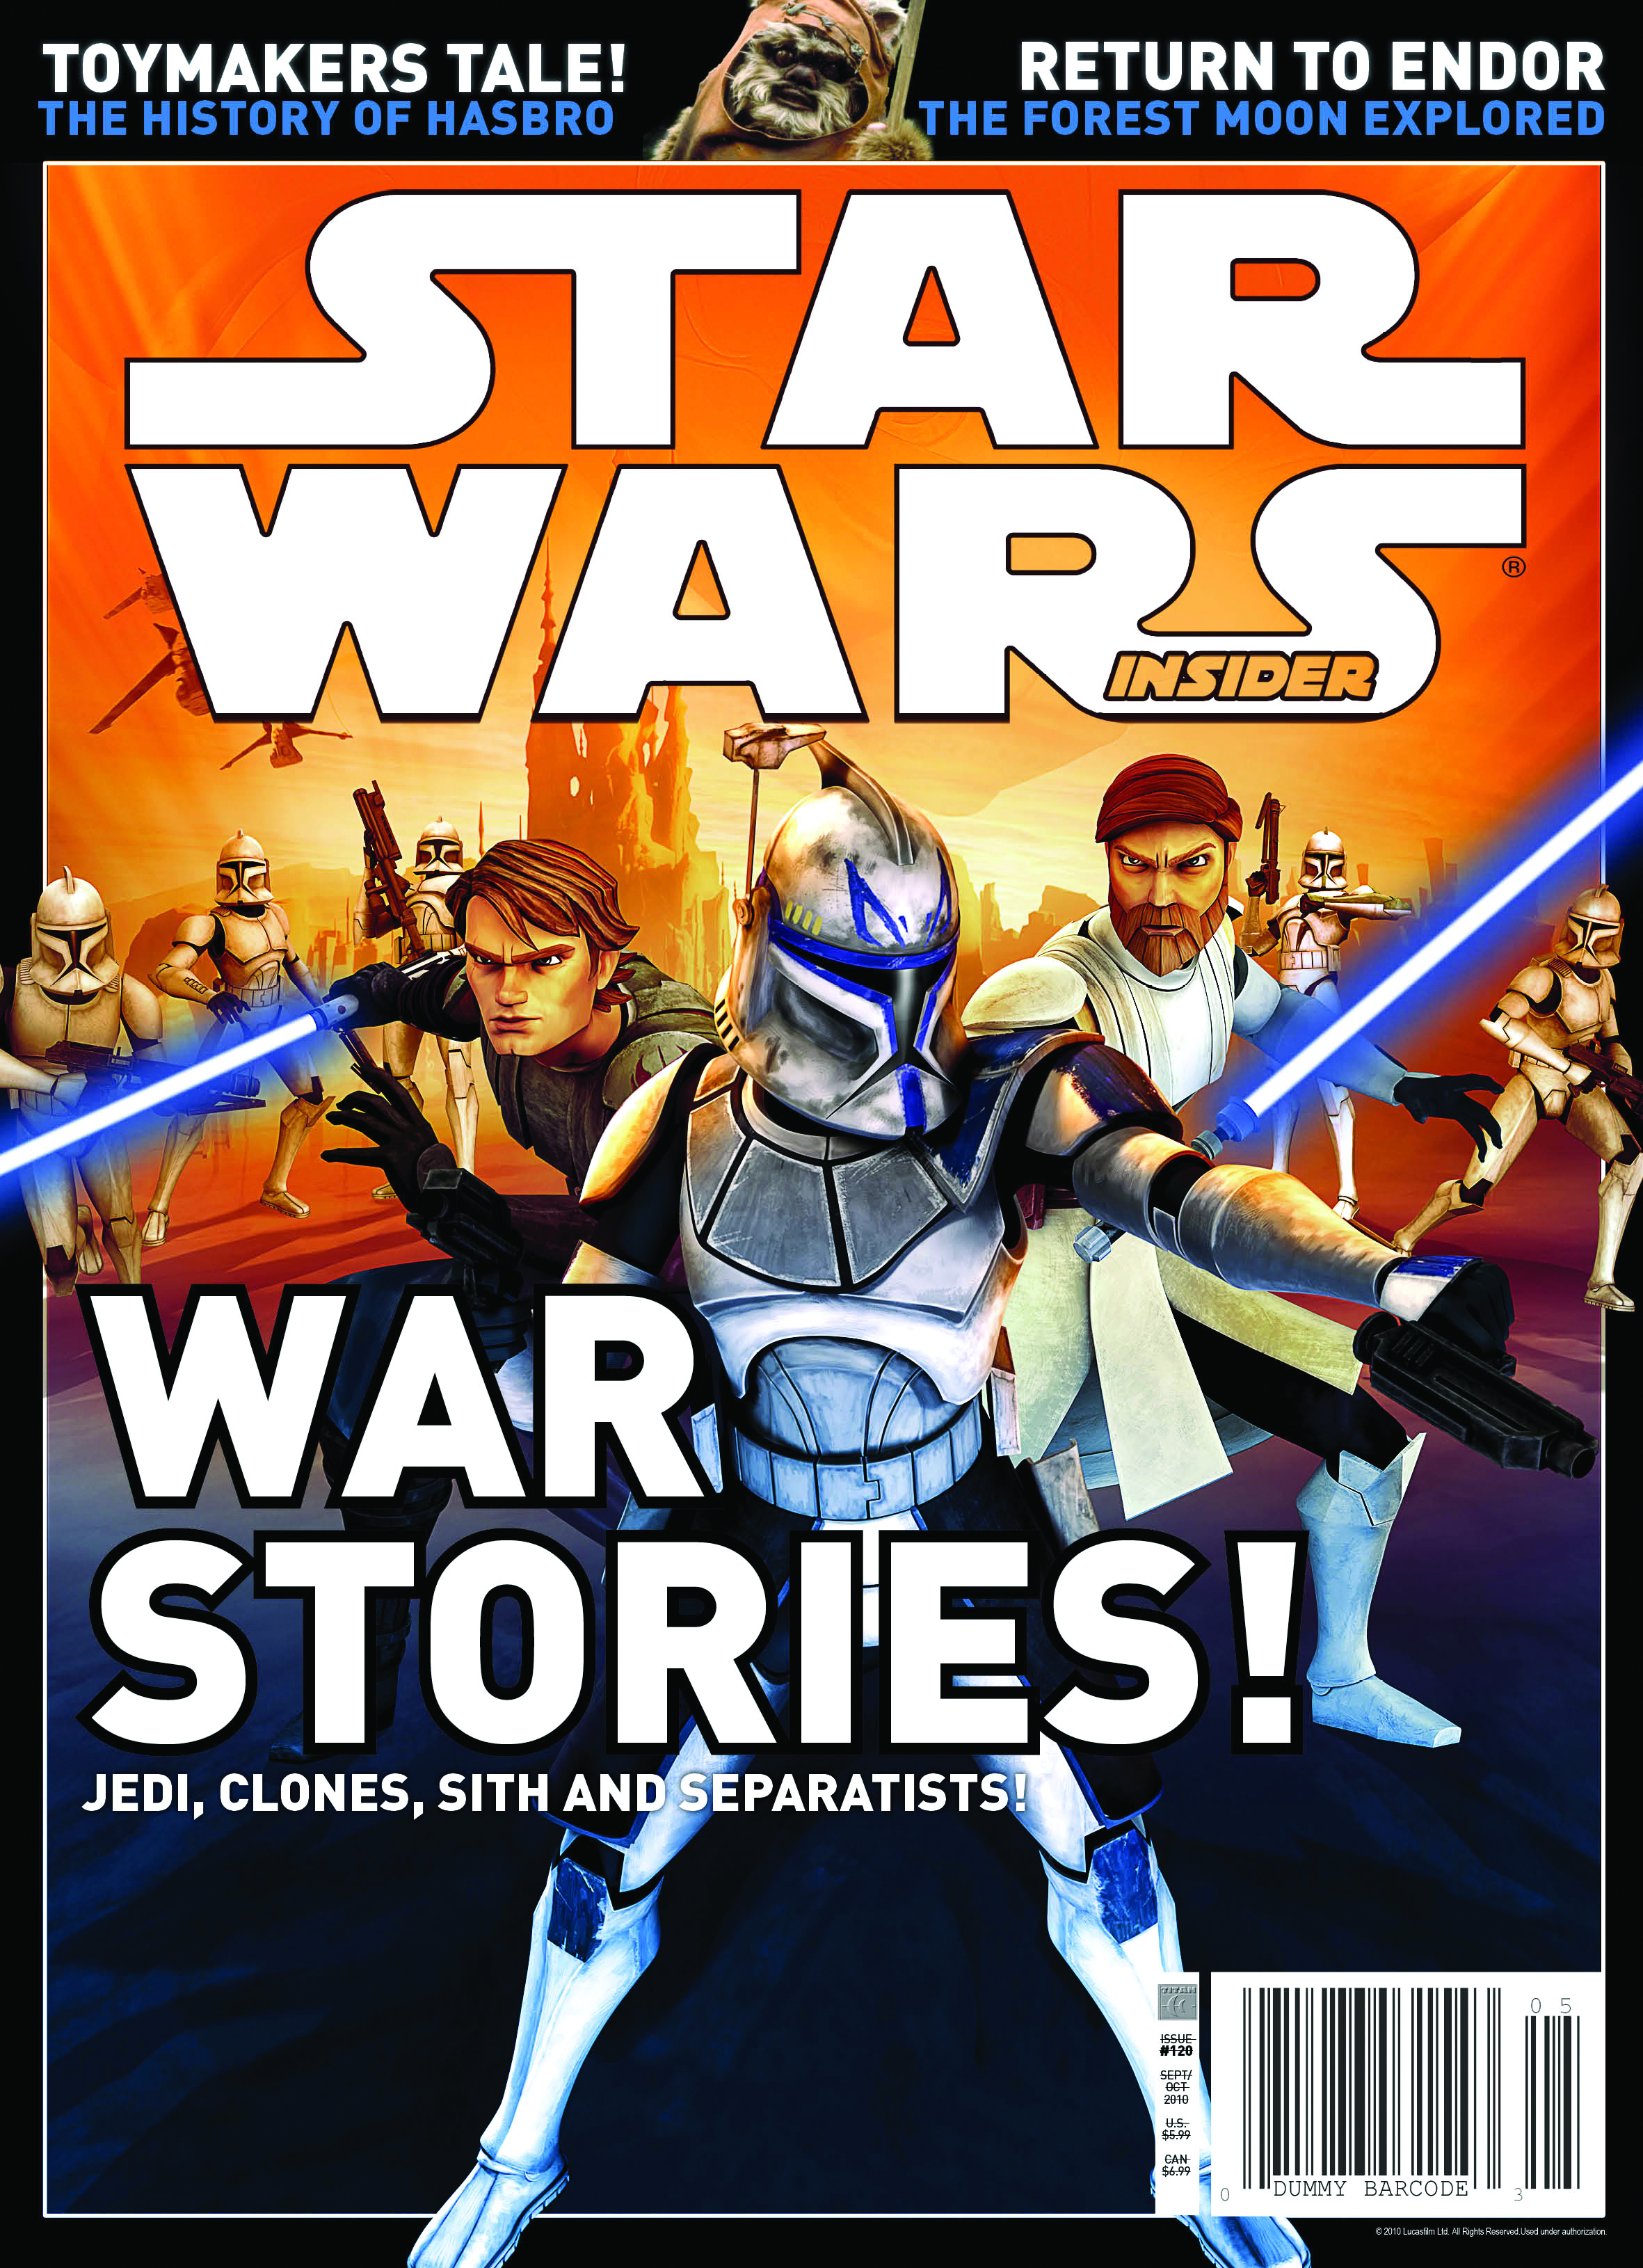 STAR WARS INSIDER #120 NEWSSTAND ED